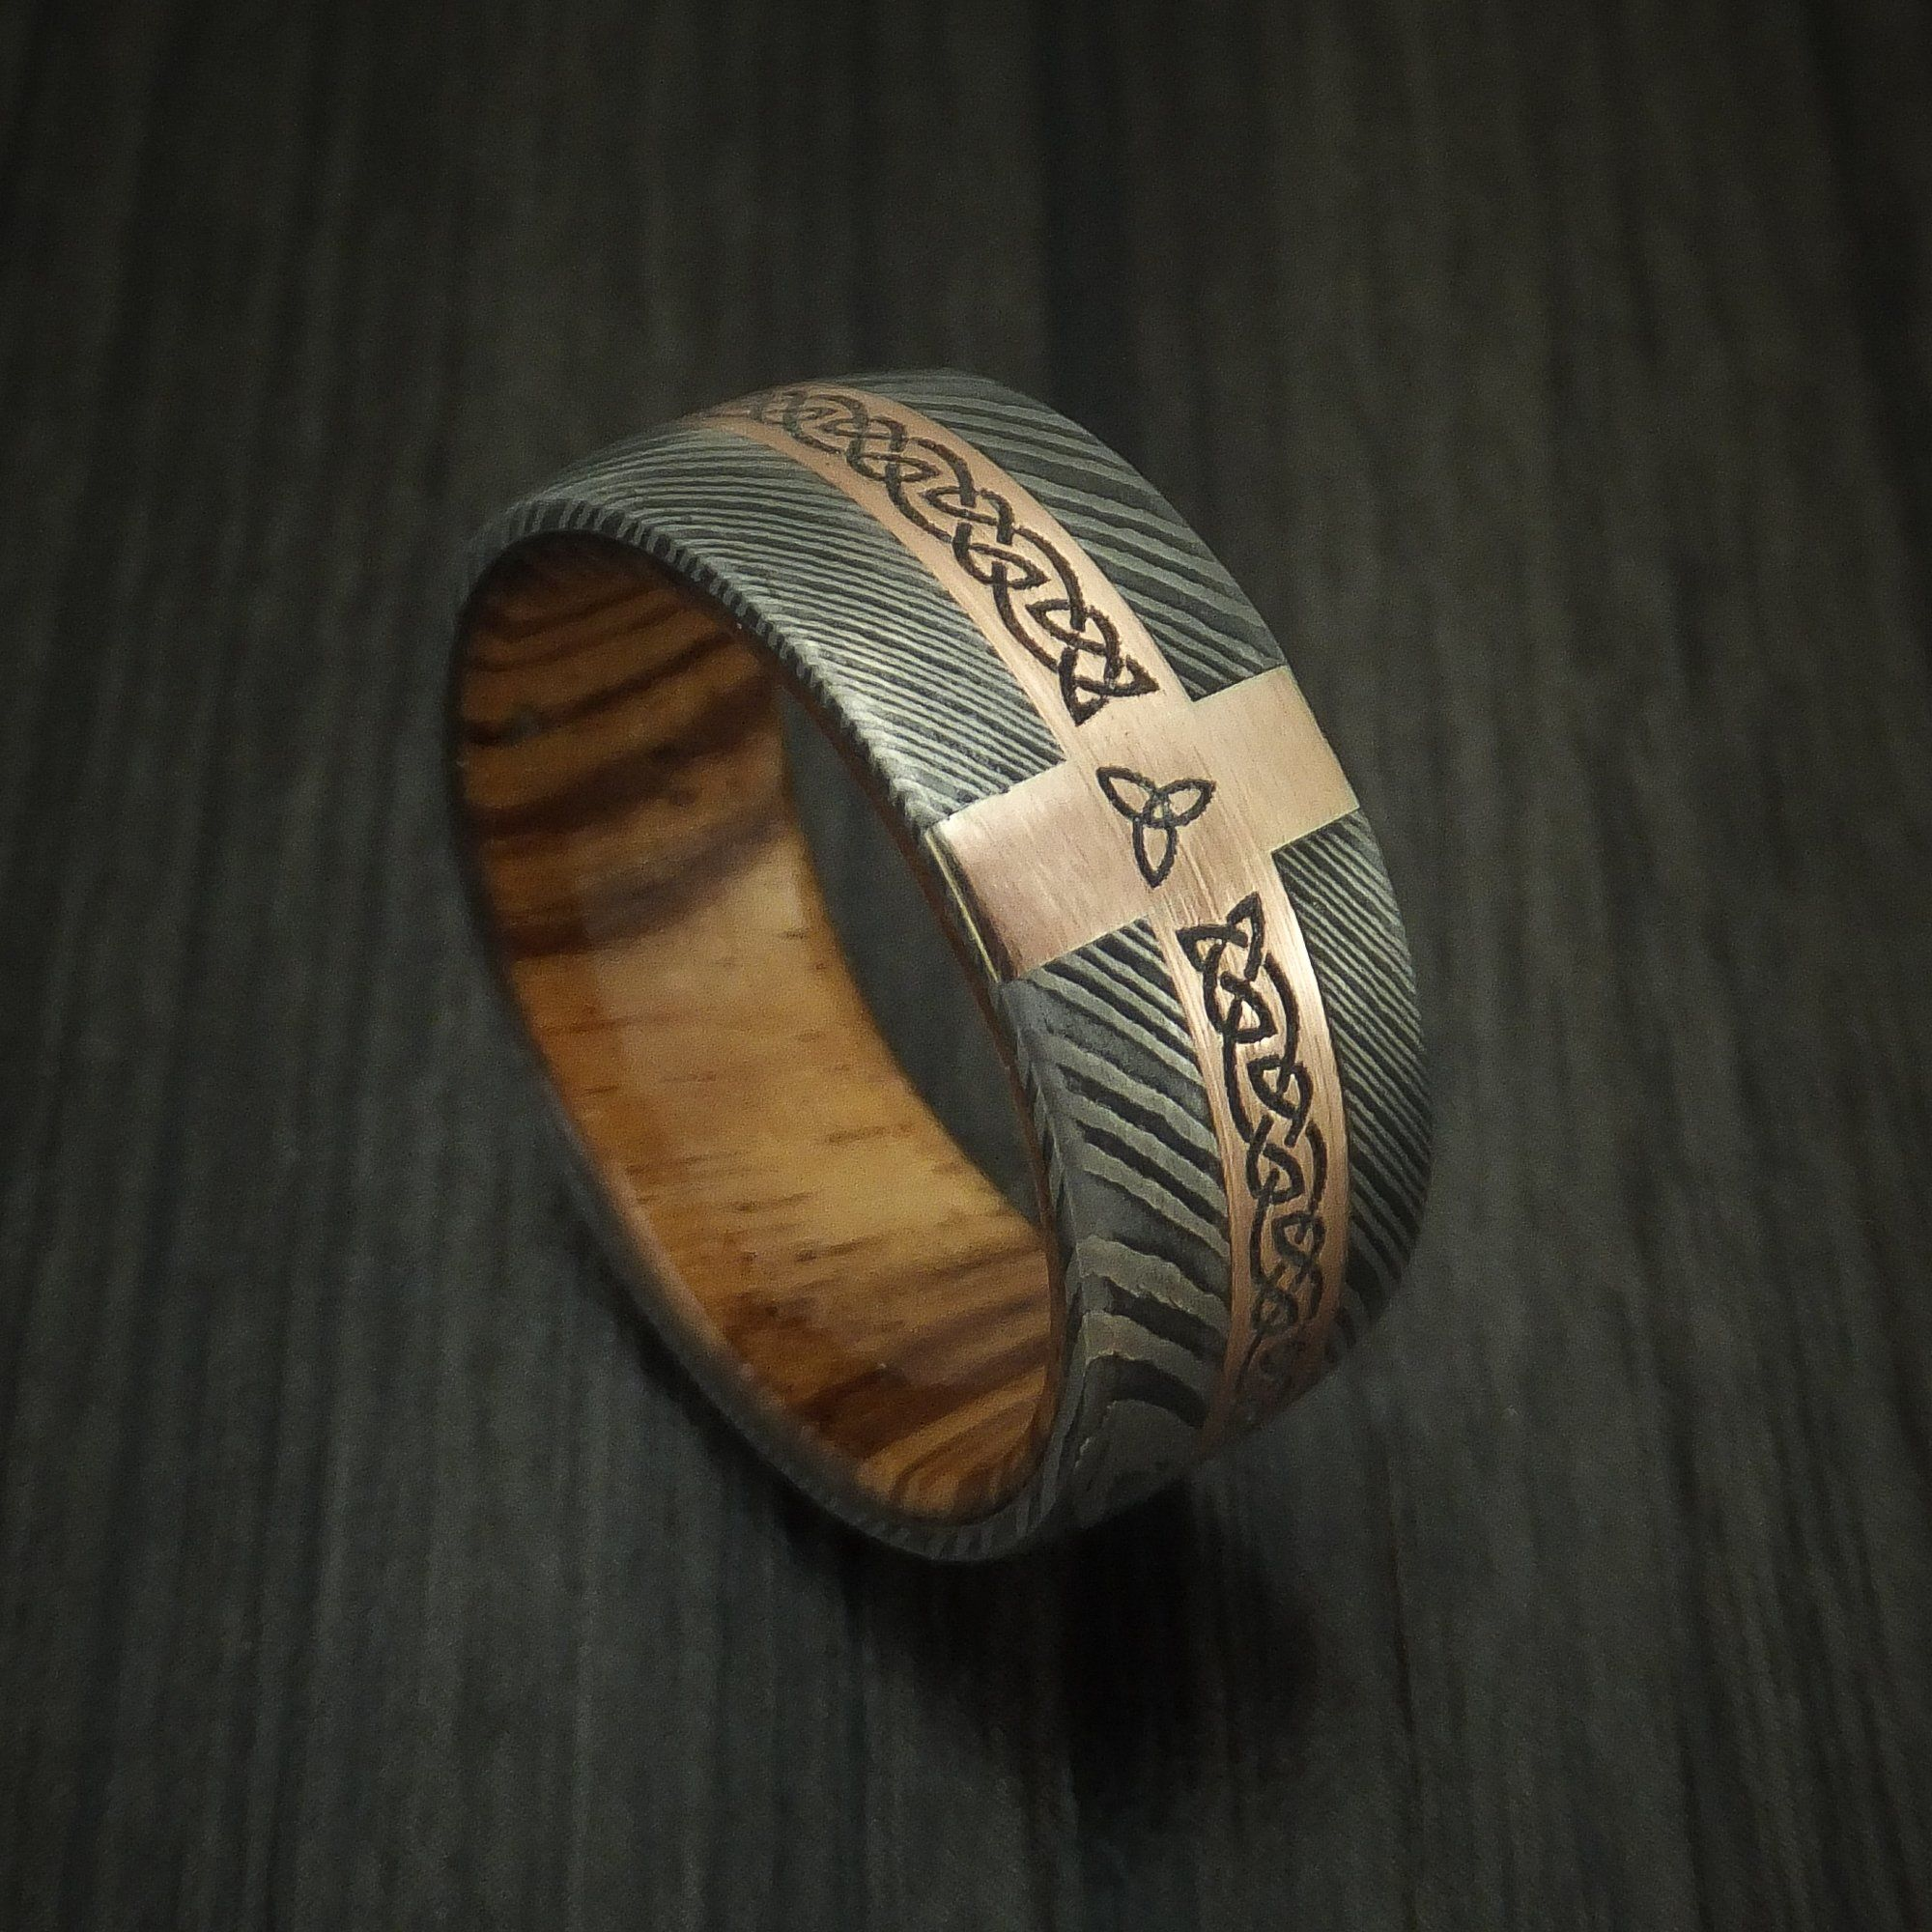 Damascus steel celtic ring with 14k rose gold and hardwood